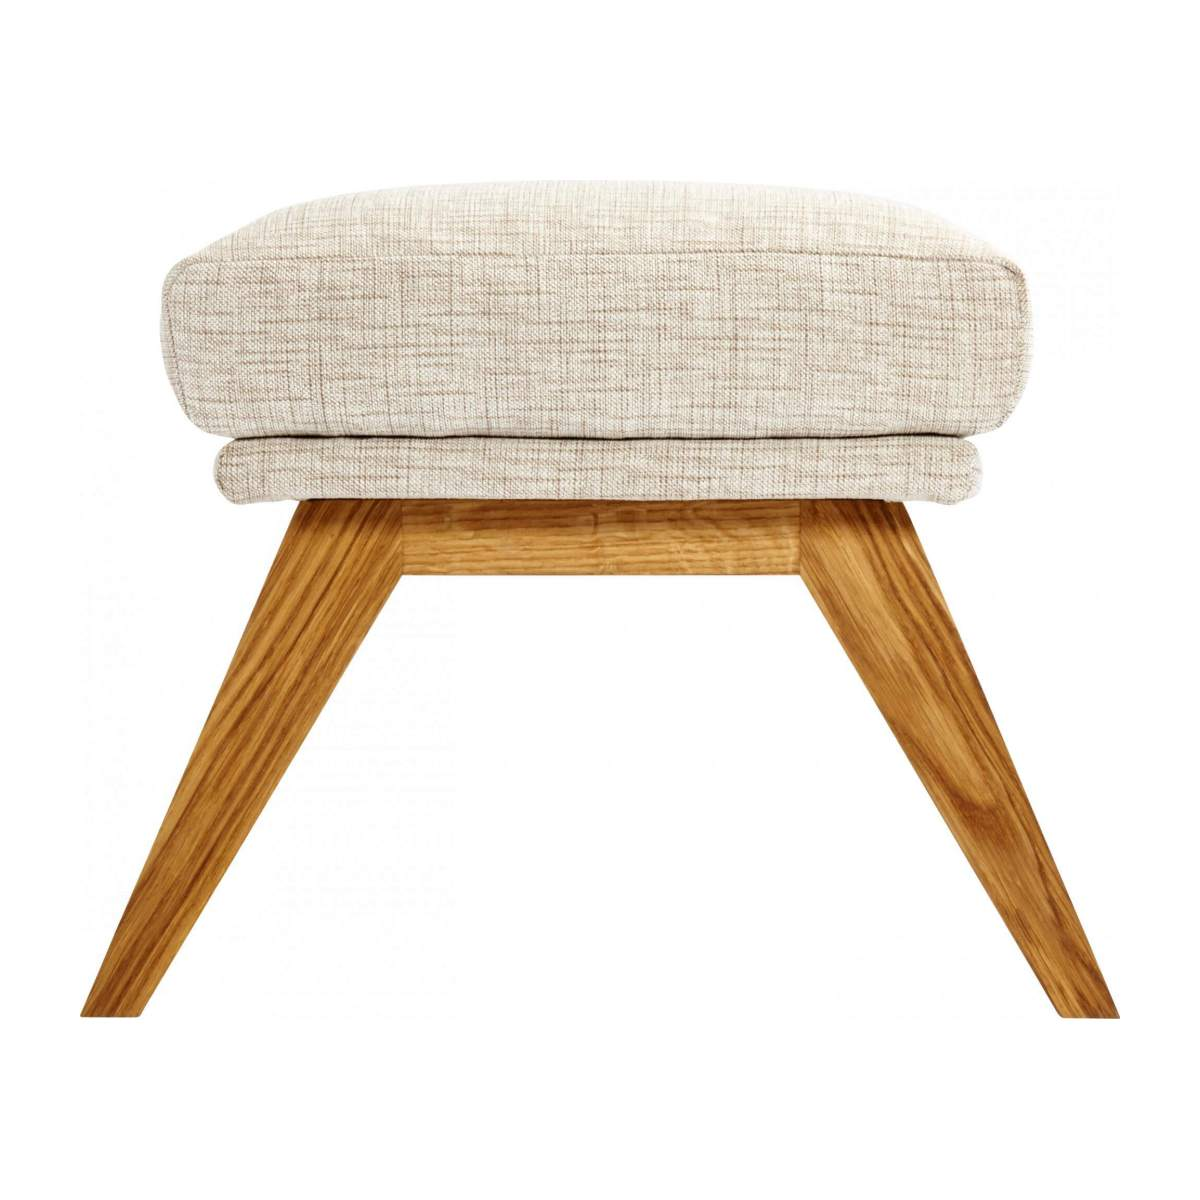 Footstool in Ancio fabric, nature with oak legs n°4